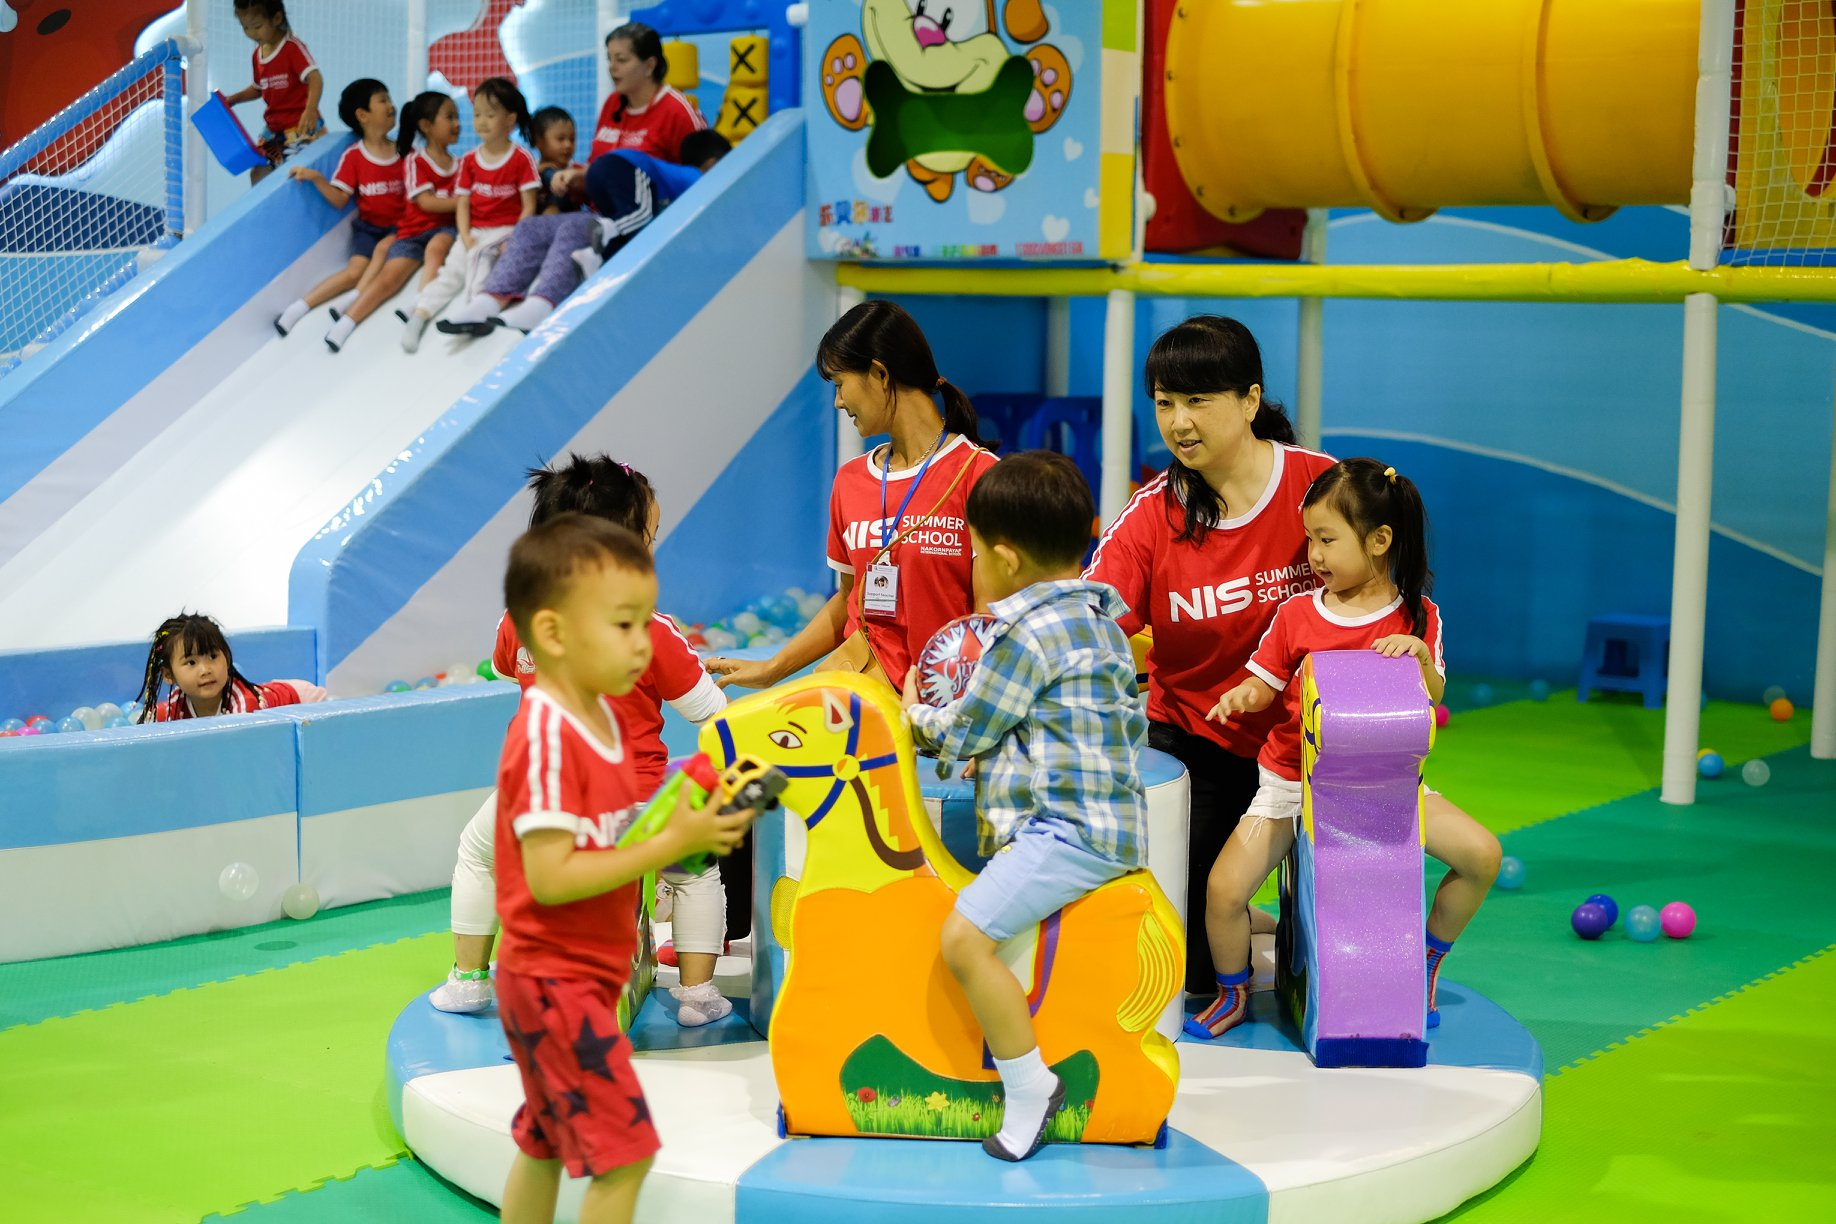 NIS-Summer-School-2019-Day-Kiddy-Land-65